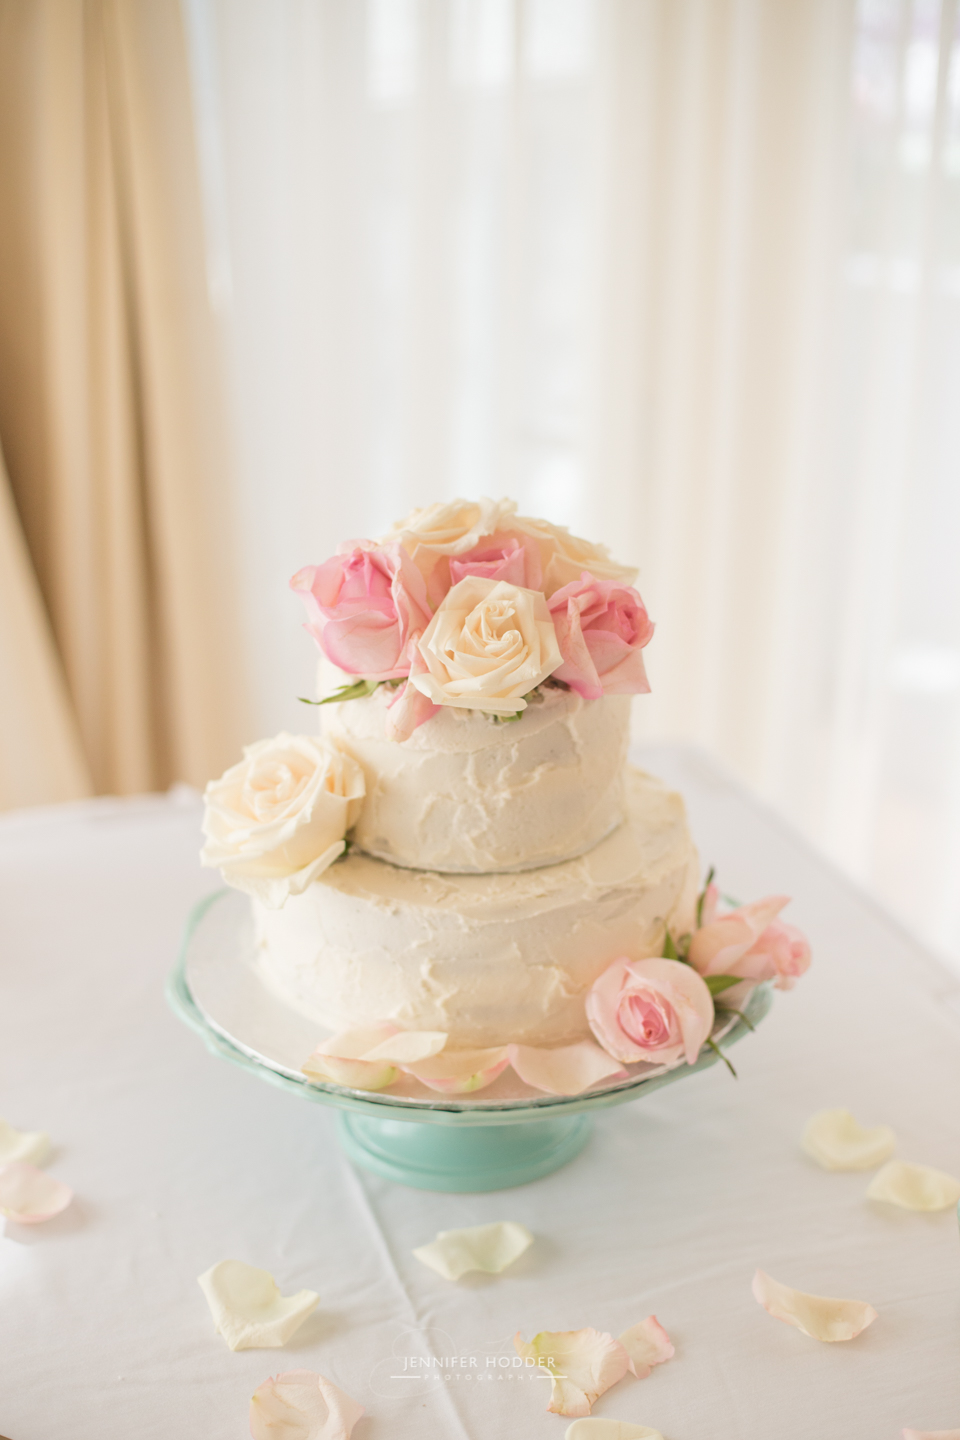 Hotel Eldorado blush wedding cake